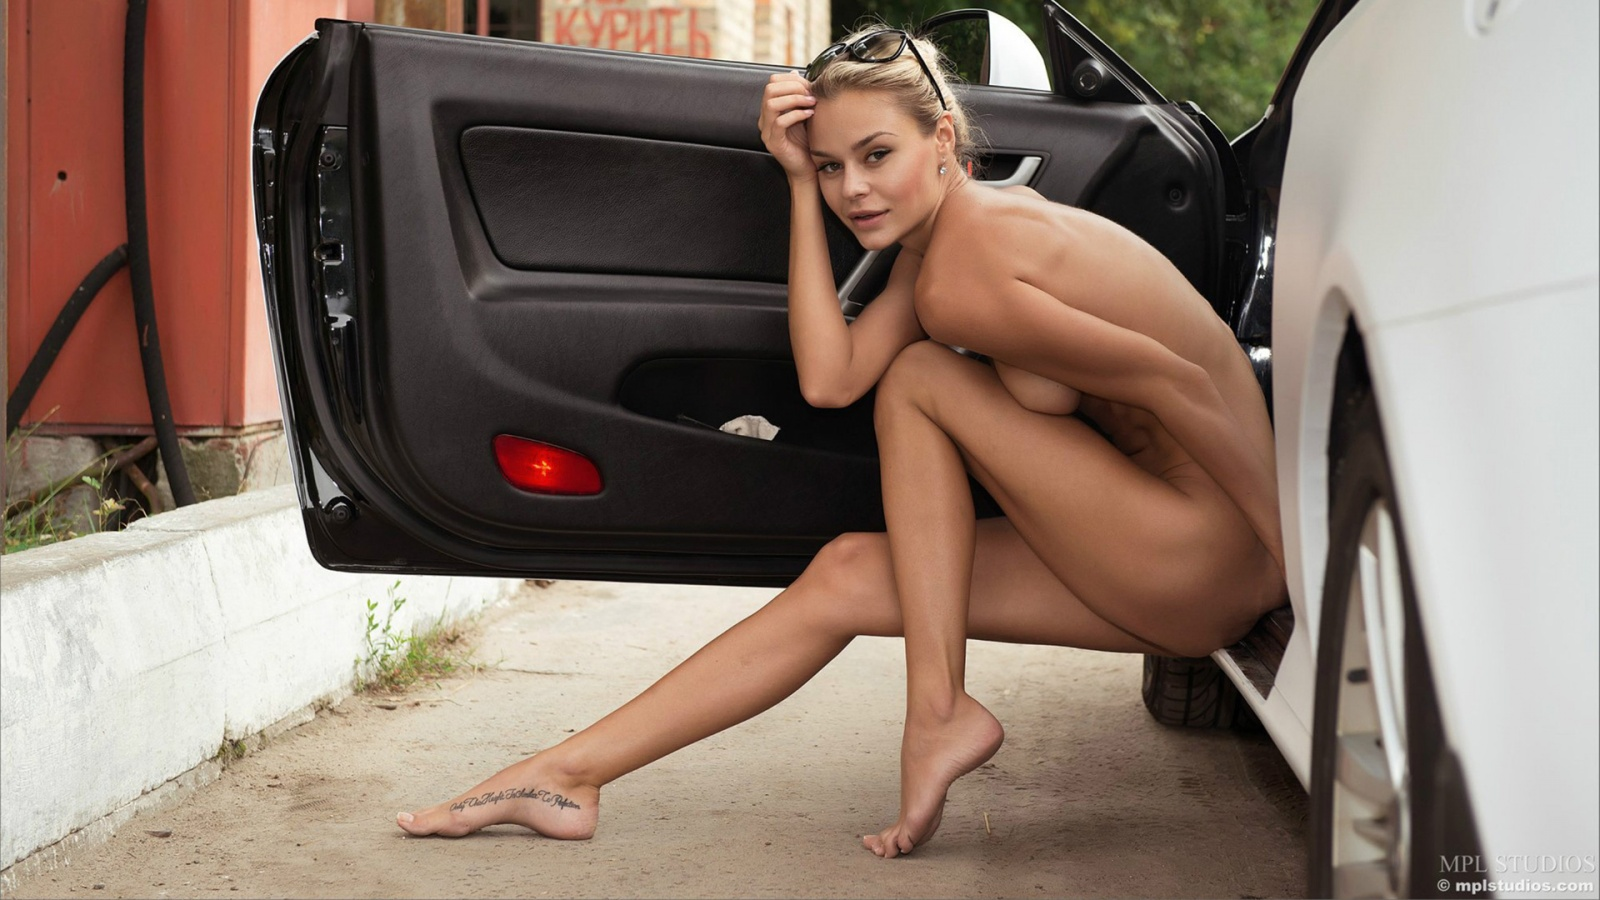 Nude Blonde naked beauty and Car hot babes and cars style ...